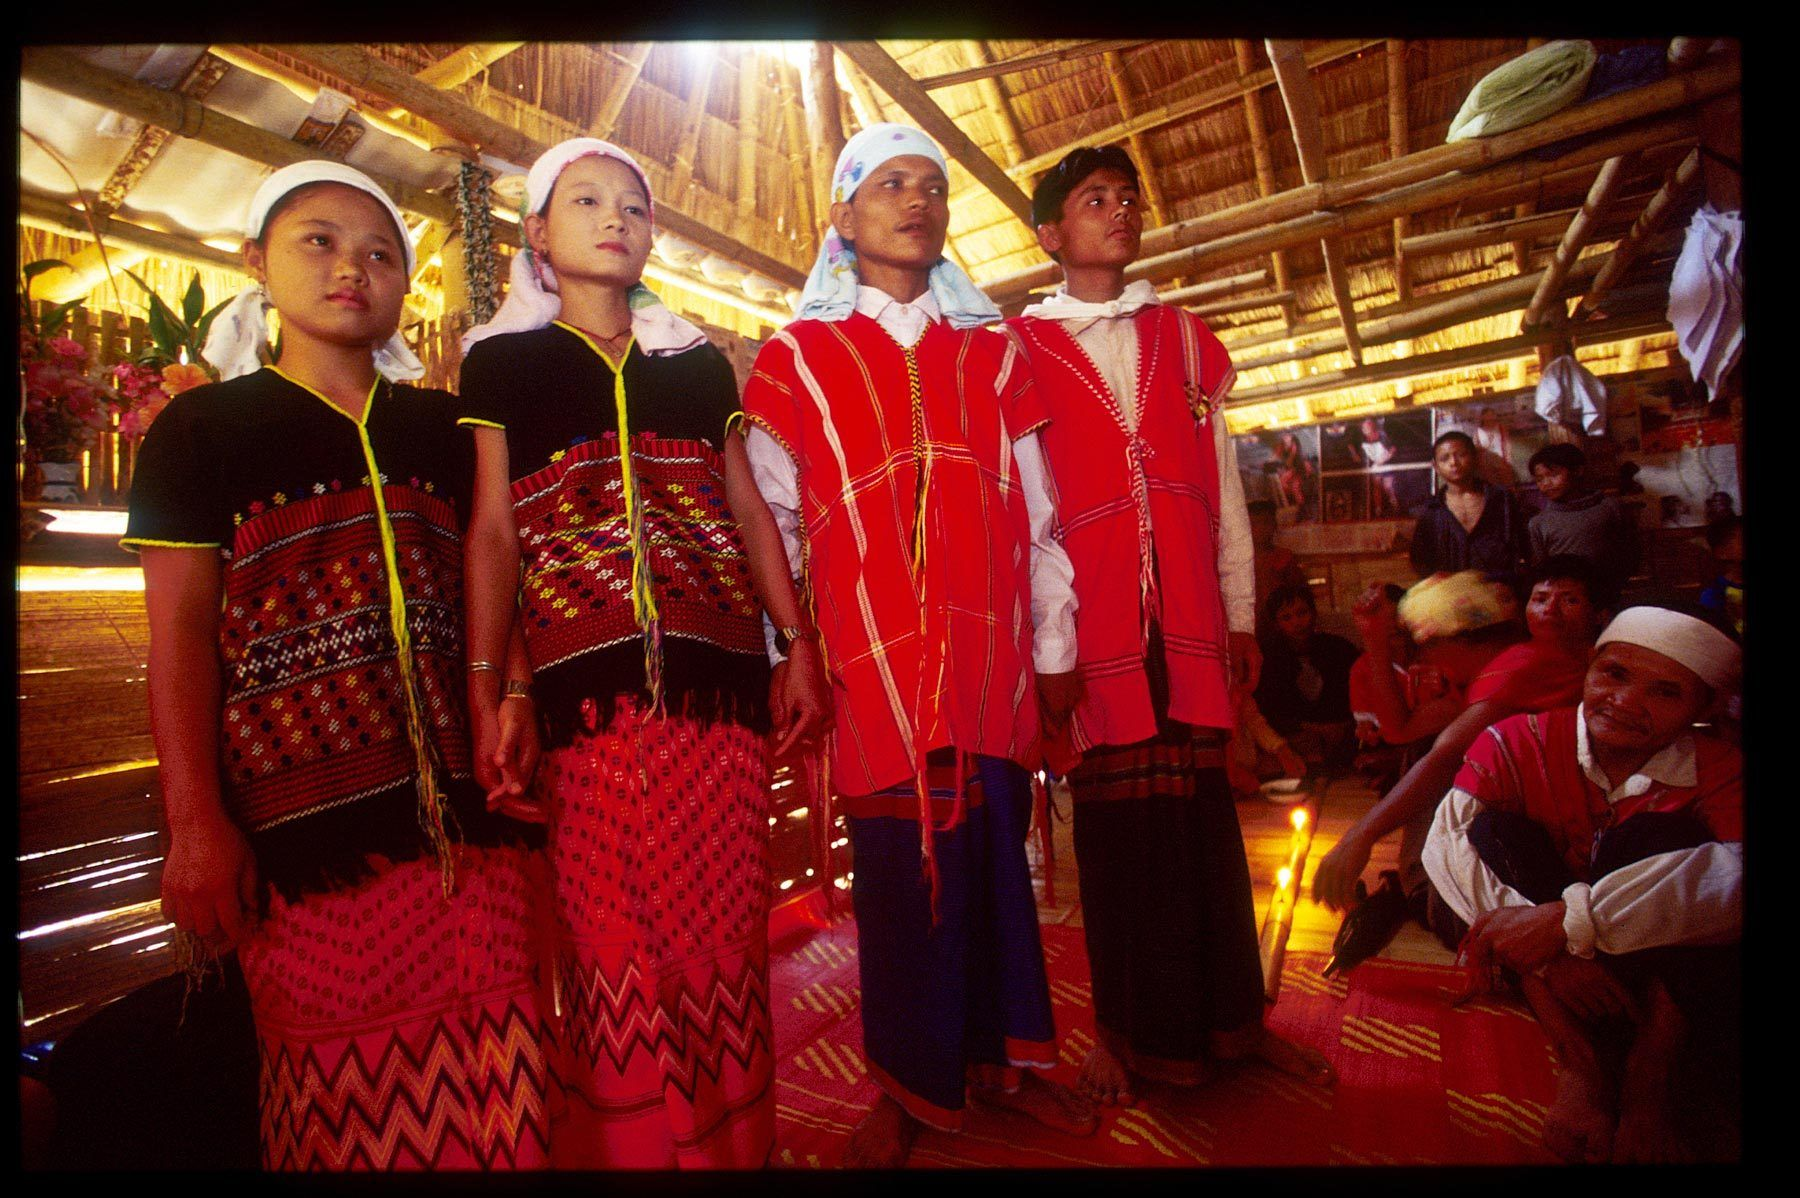 Karen traditional wedding